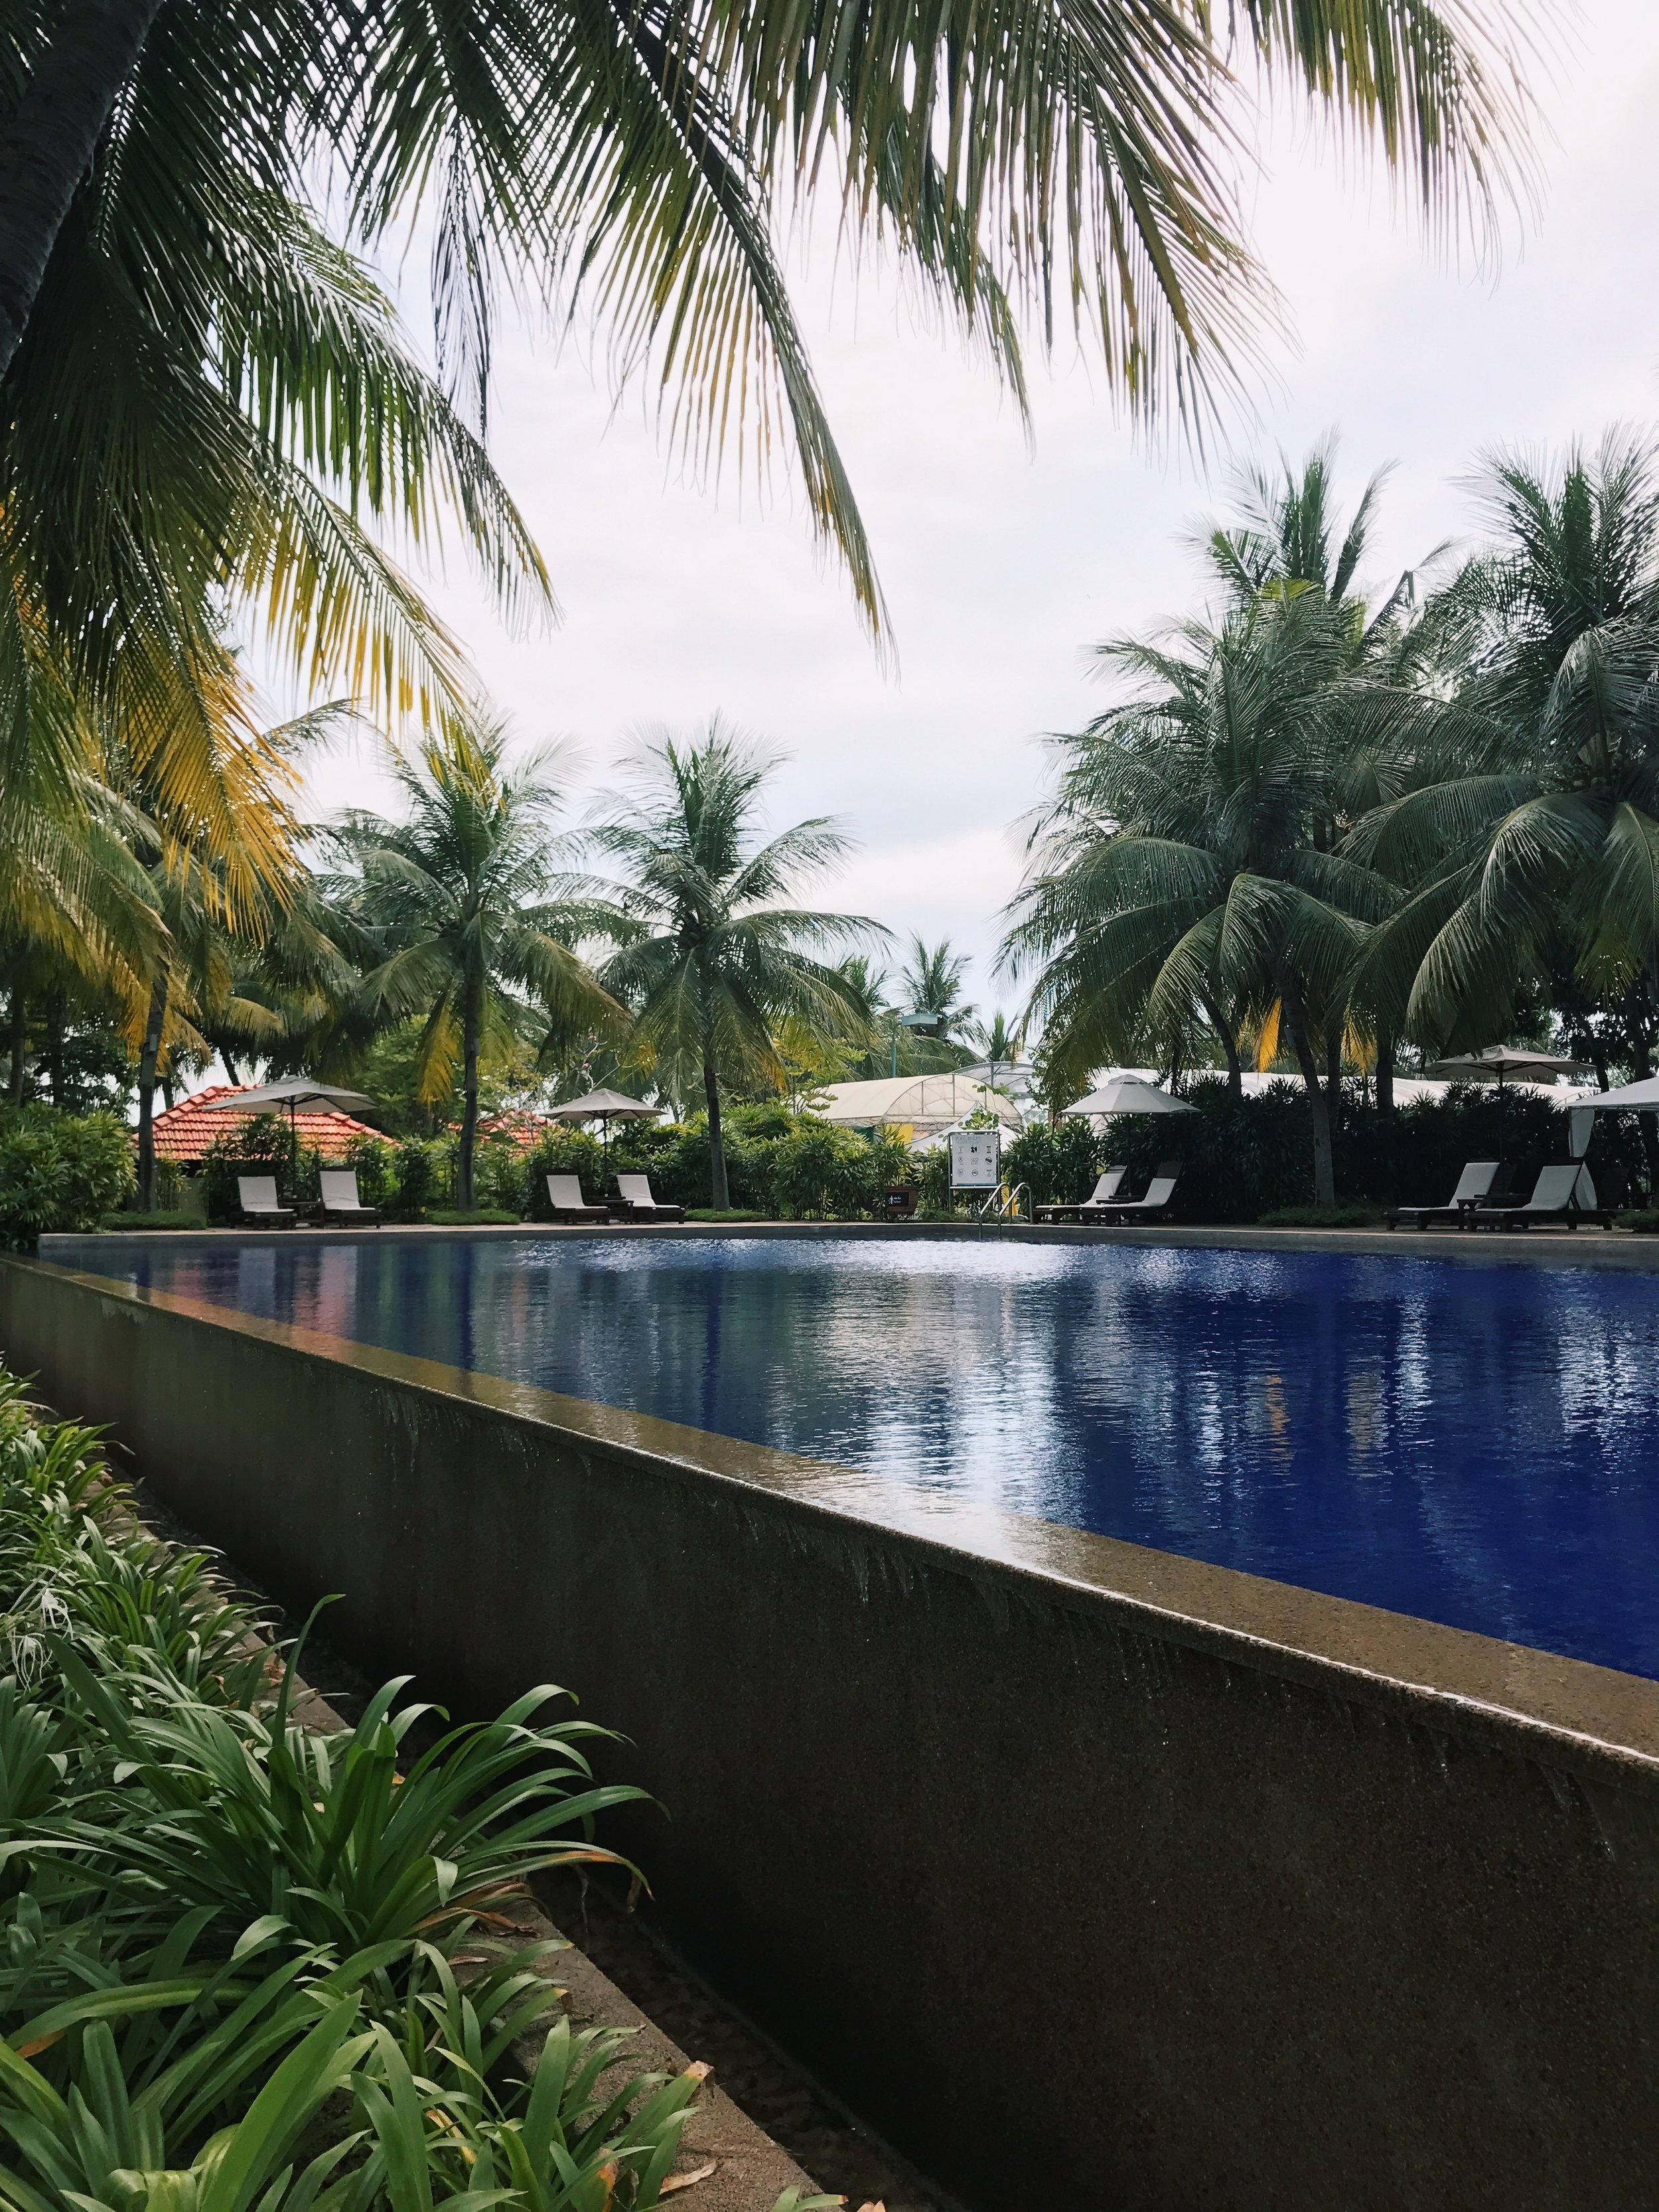 We checked in after an hour's drive from KL to PD and took a swim in the pool surrounded by shady palm trees and serenity.